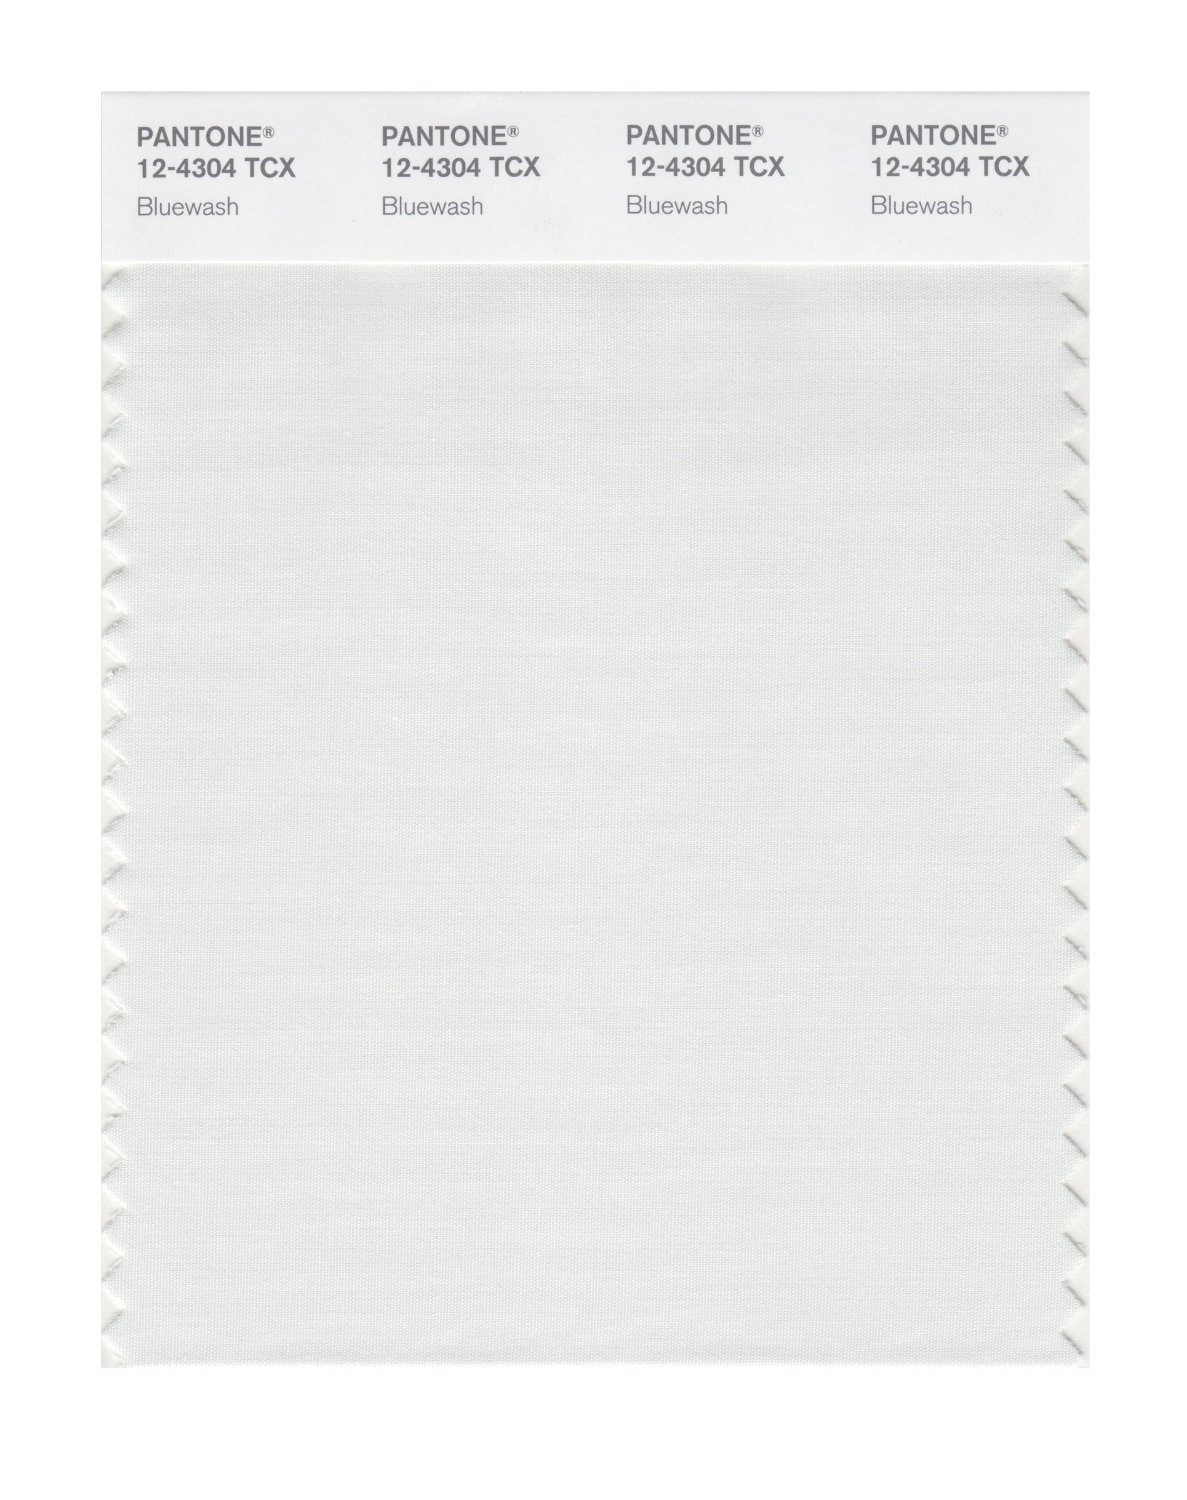 Pantone Smart Swatch 12-4304 Bluewash